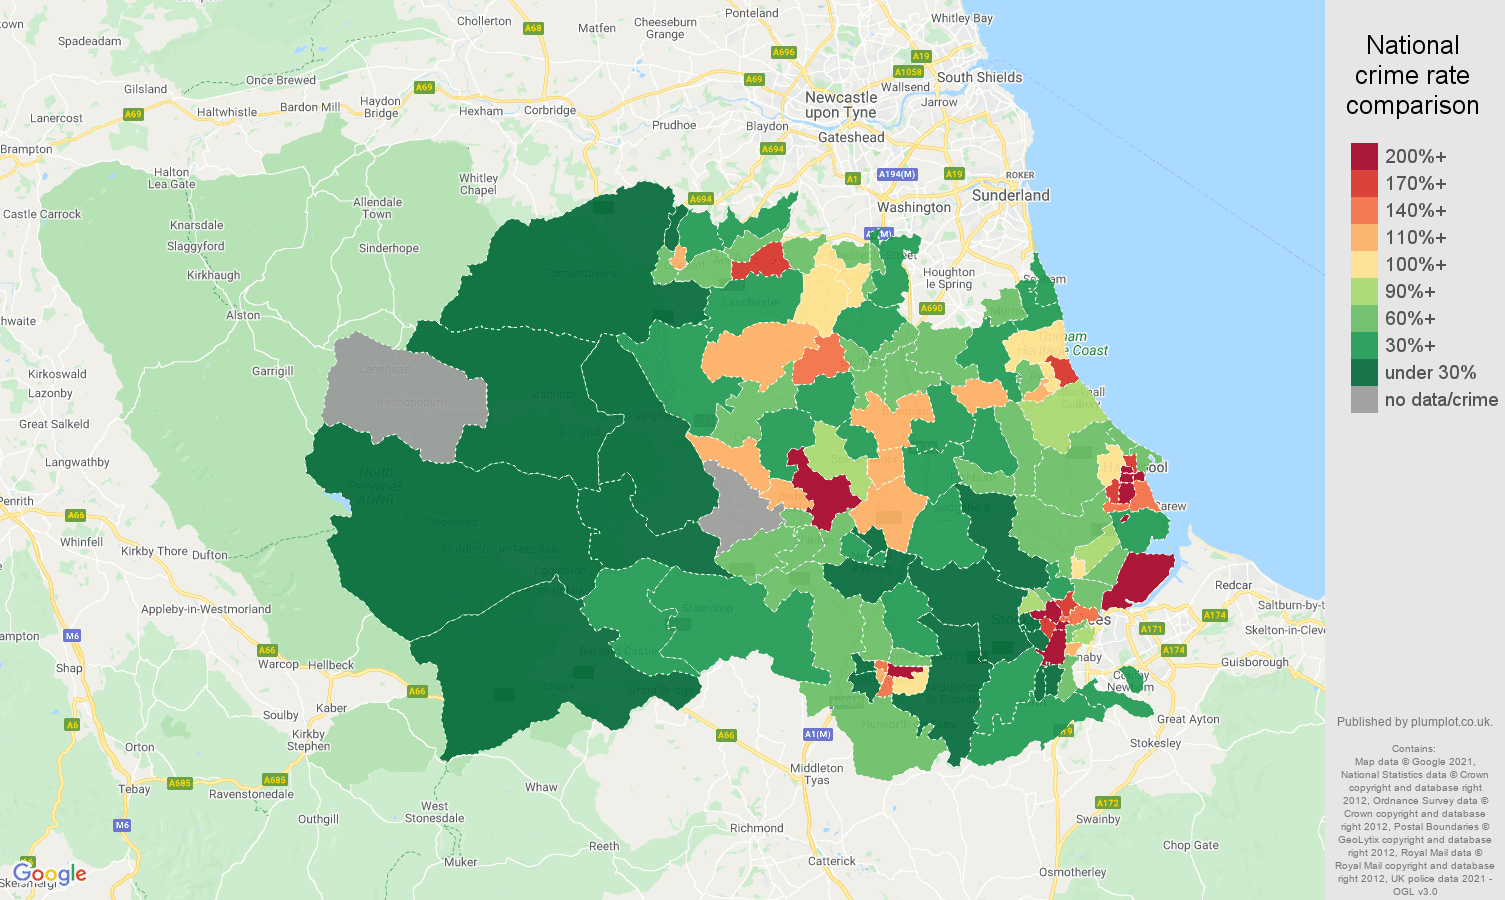 Durham county drugs crime rate comparison map